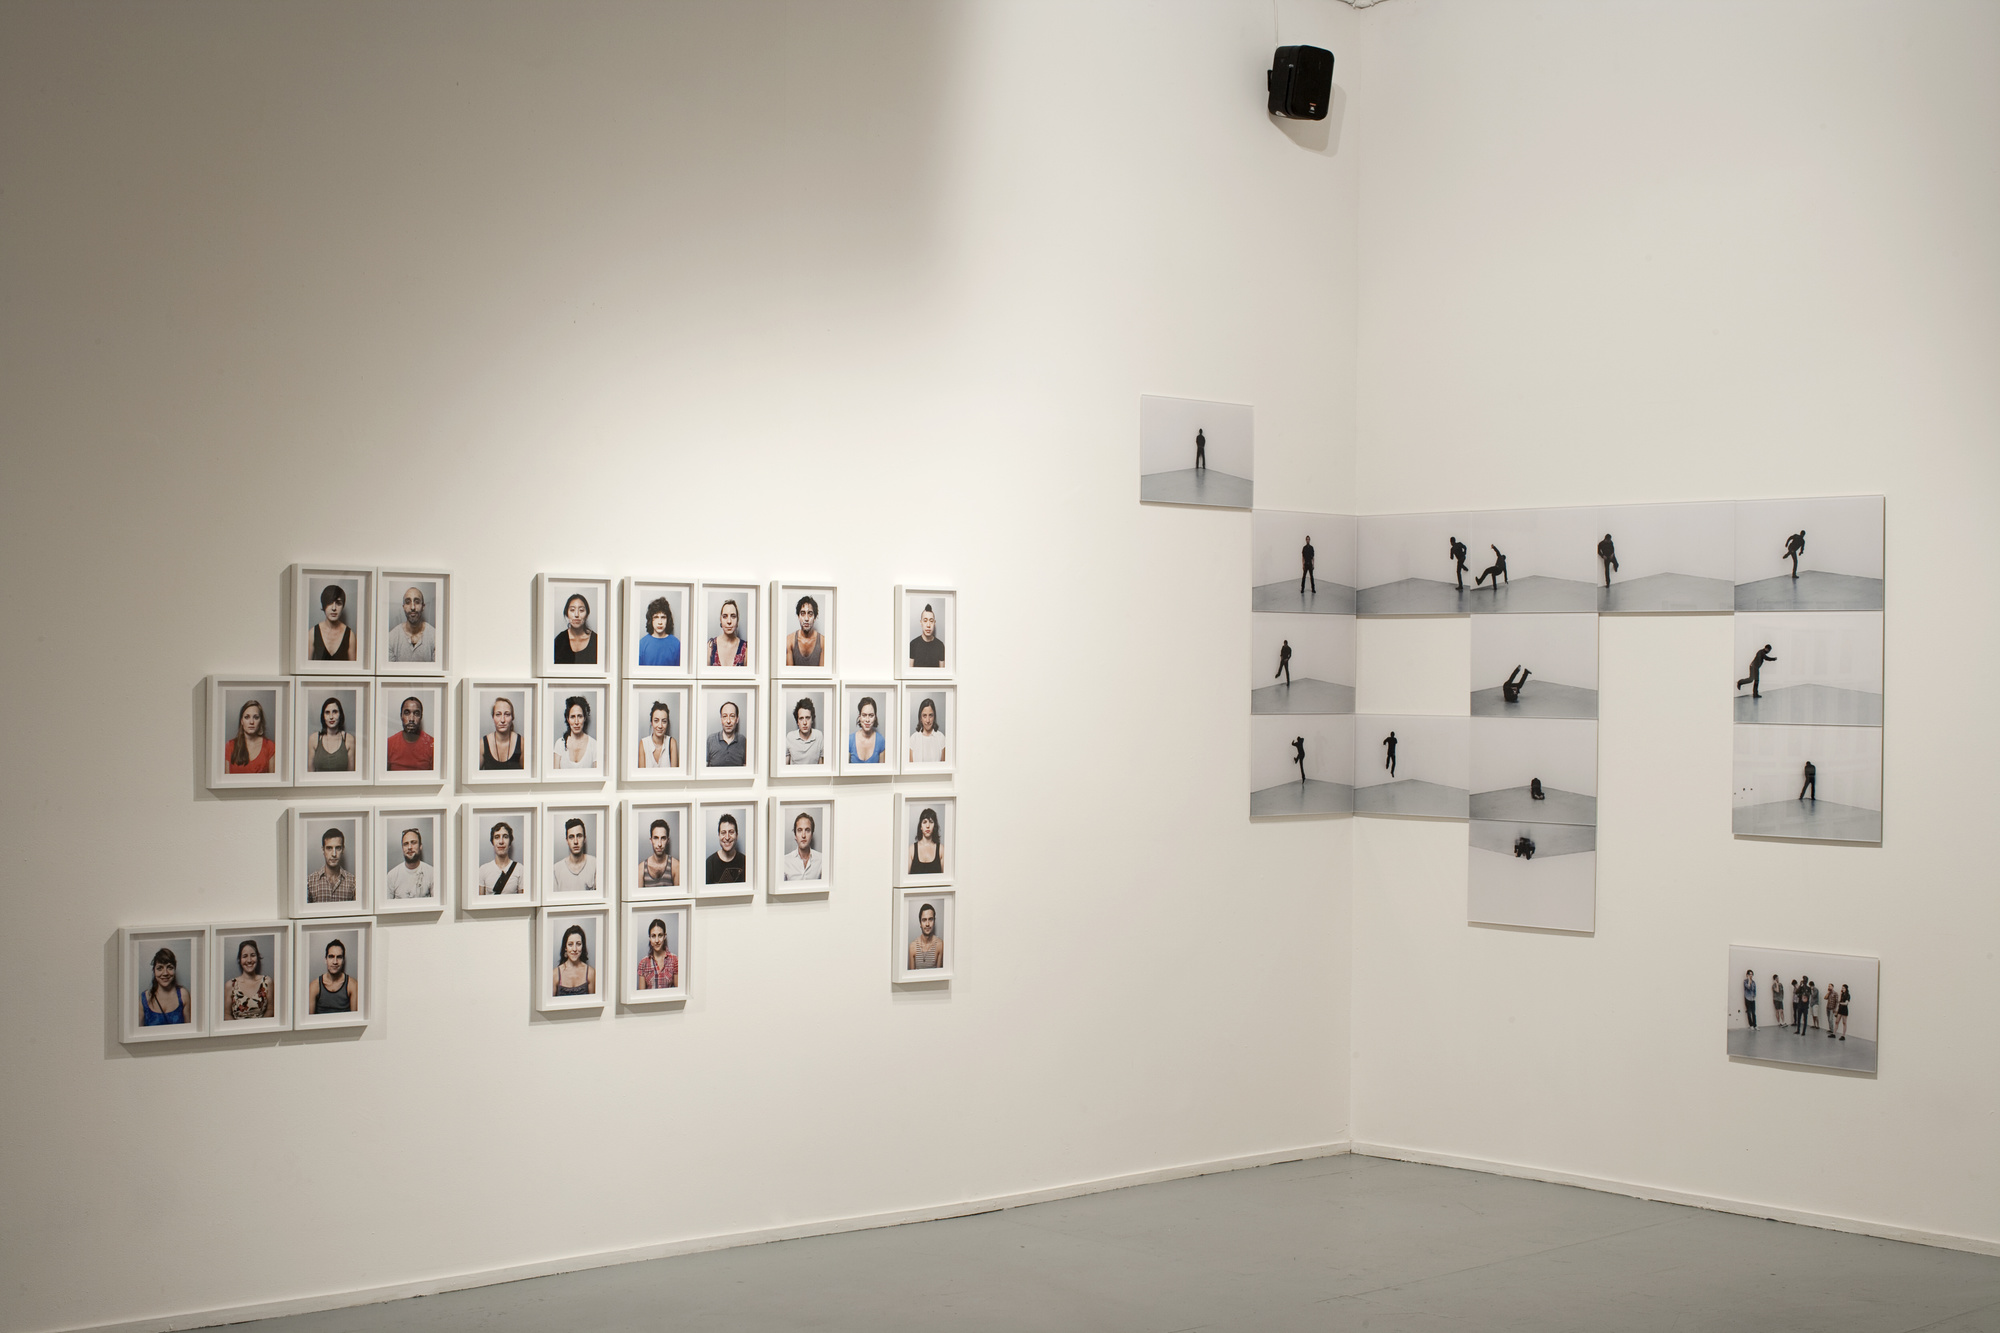 Installation view of Clifford Owens: Anthology at MoMA PS1, November 13, 2011–May 7, 2012. Photo: Matthew Septimus